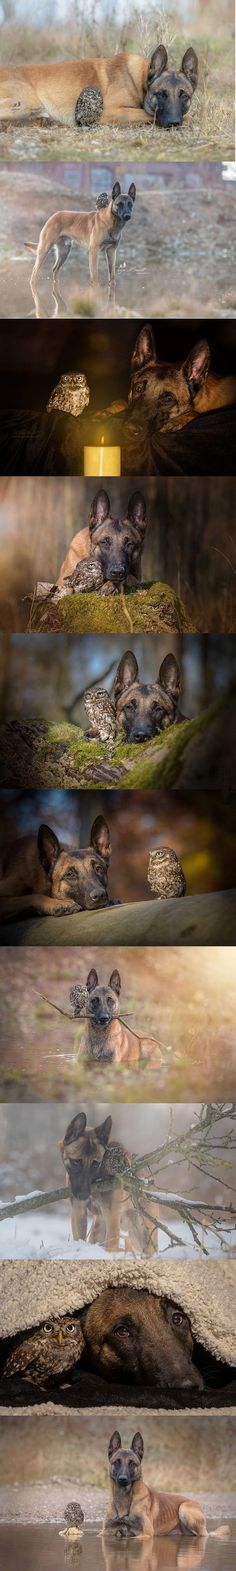 Owl & dog are unlikely animal friends! Animals And Pets, Baby Animals, Funny Animals, Cute Animals, I Love Dogs, Cute Dogs, Unlikely Friends, Amor Animal, Odd Couples